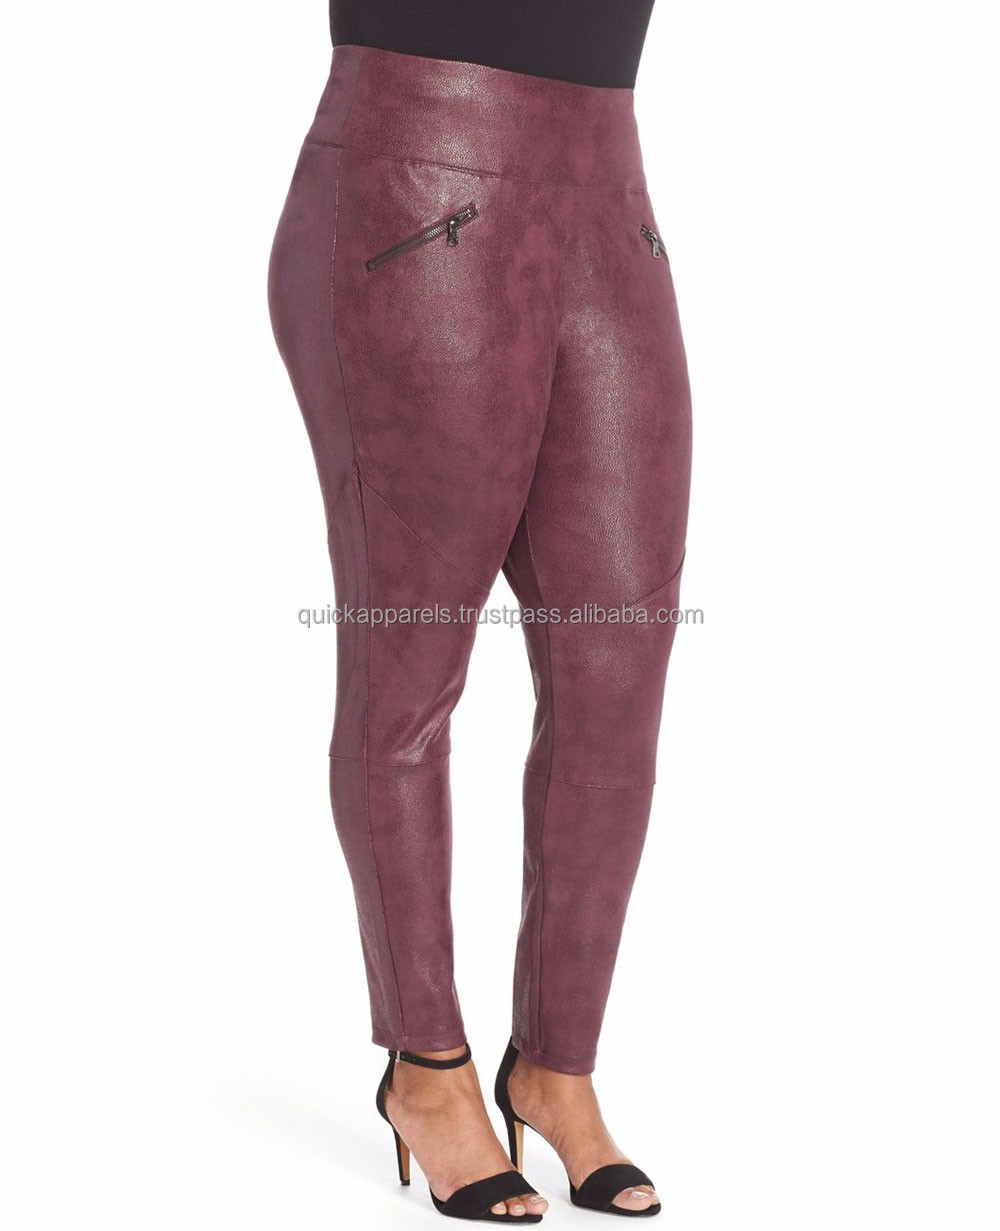 High Quality PU Pants for Women